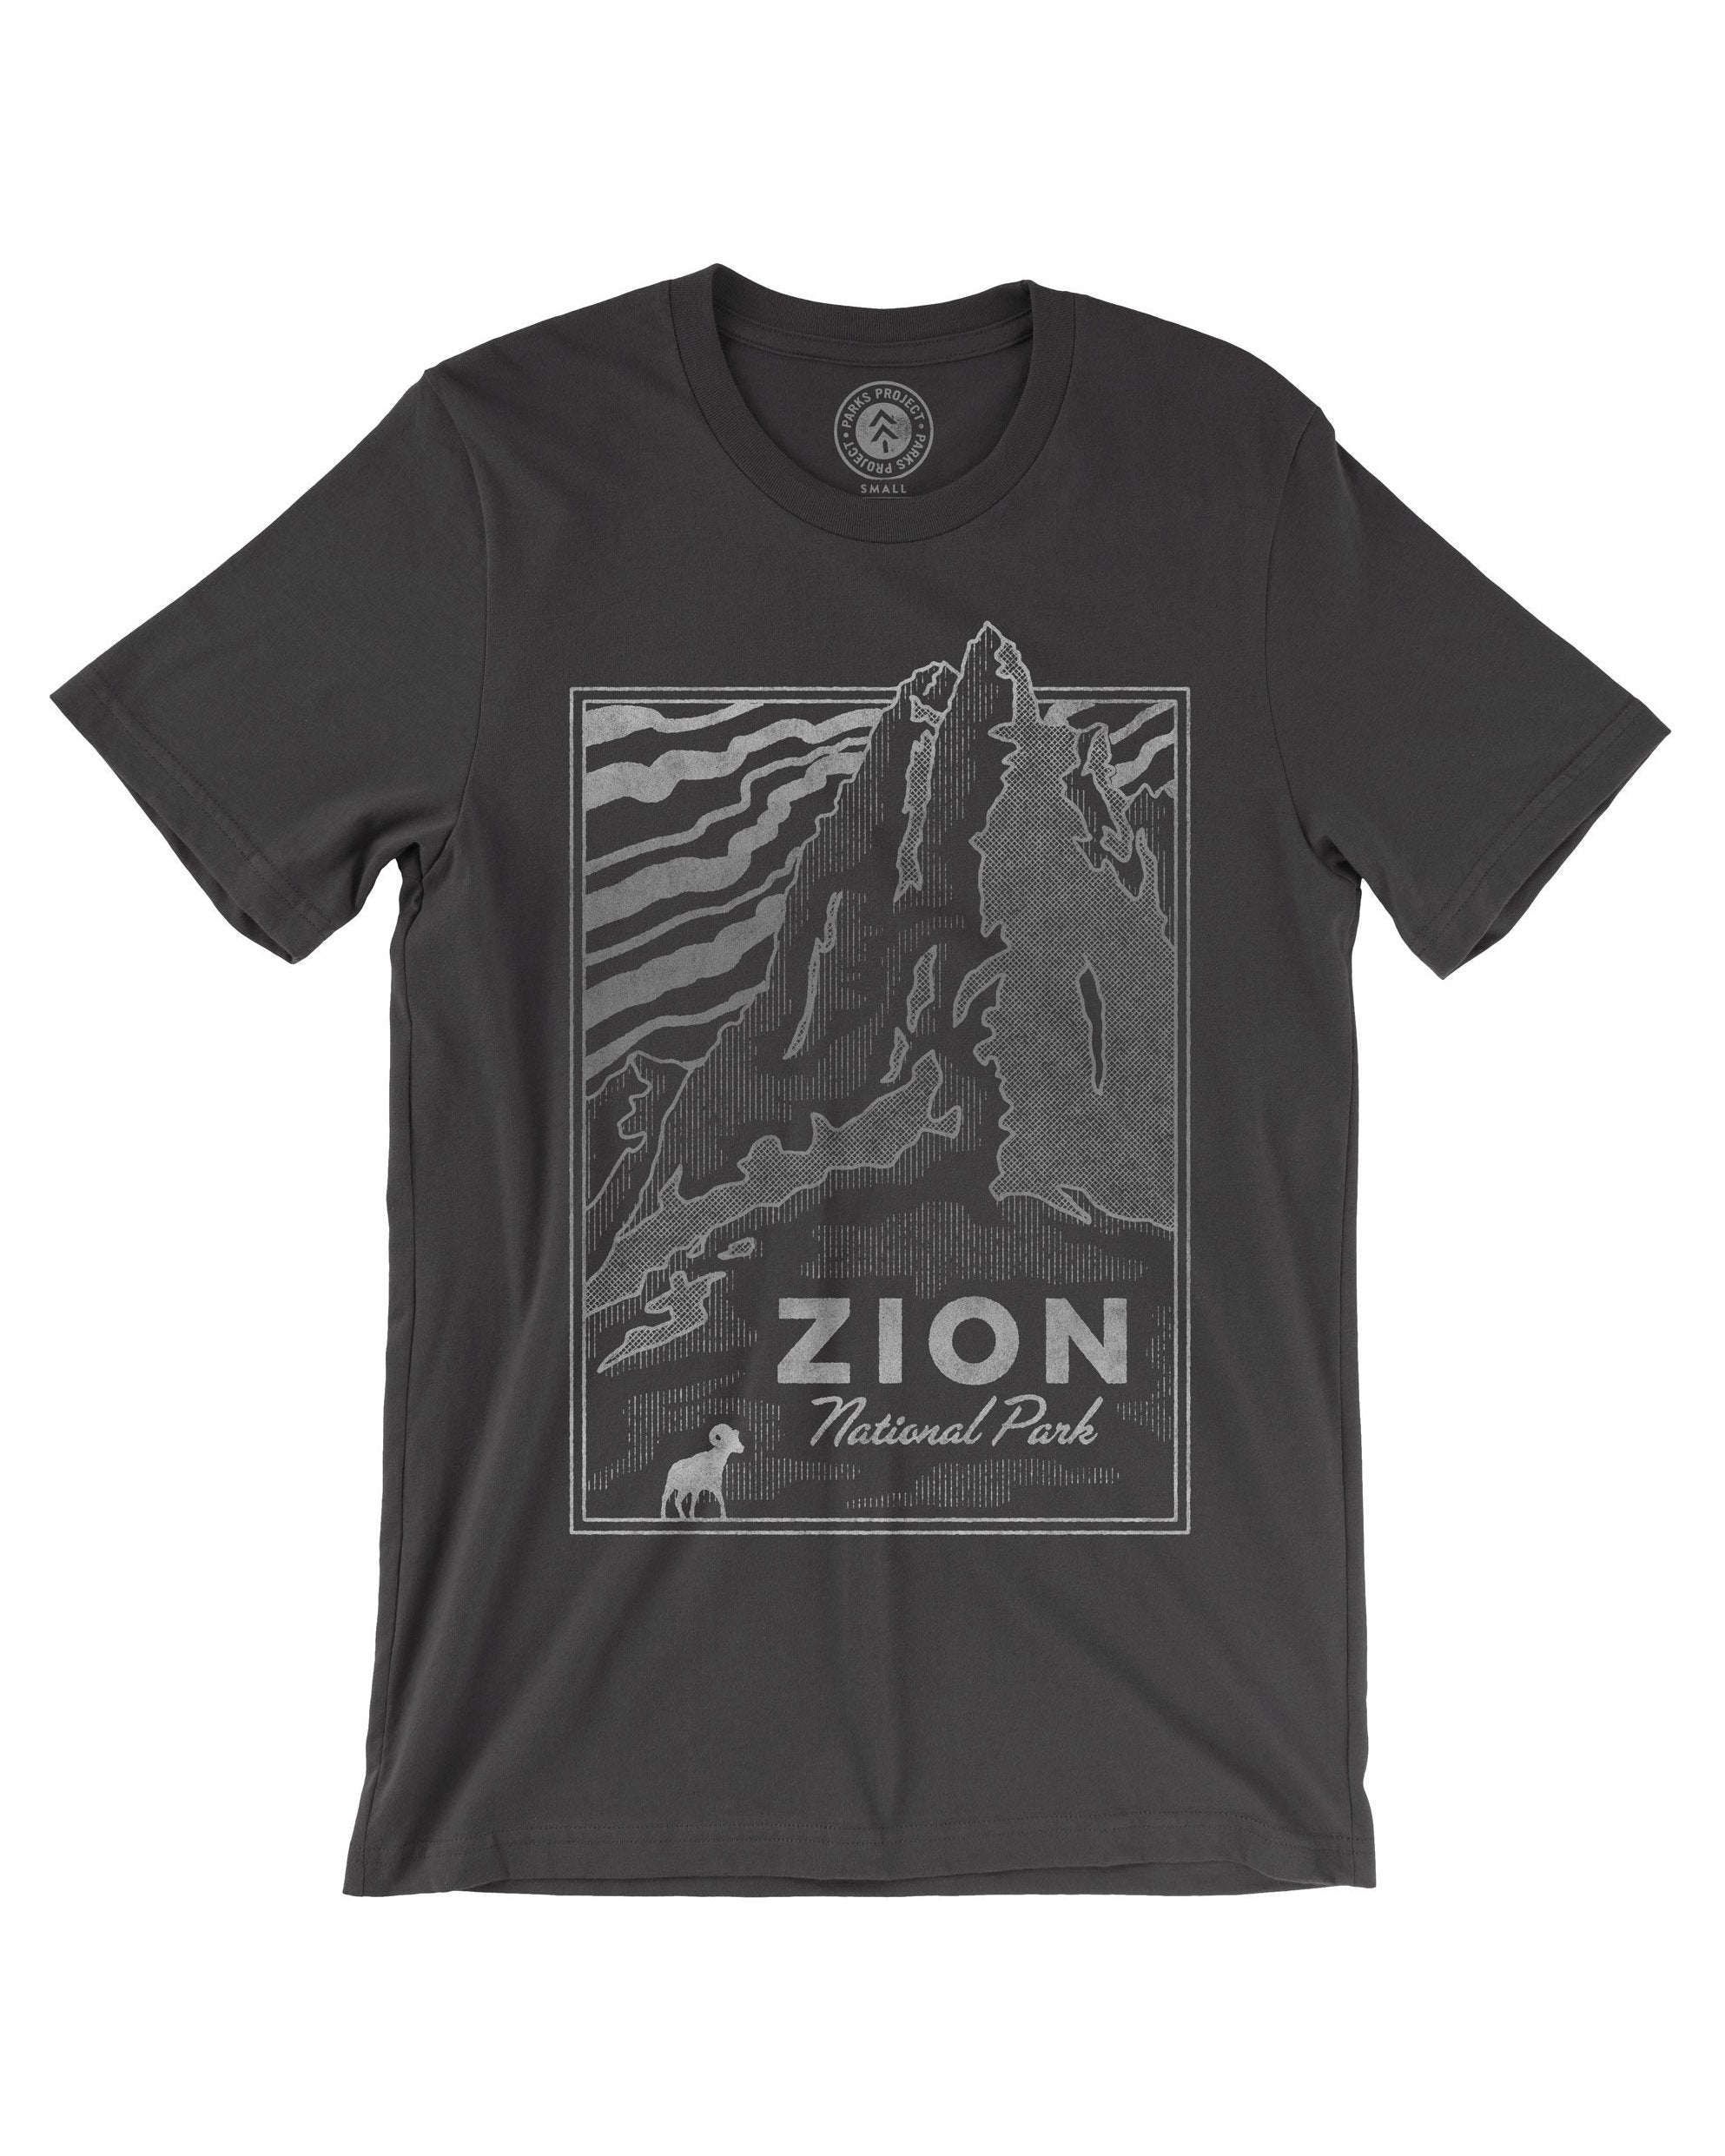 Zion National Park Peak Tee | Parks Project | National Parks Apparel